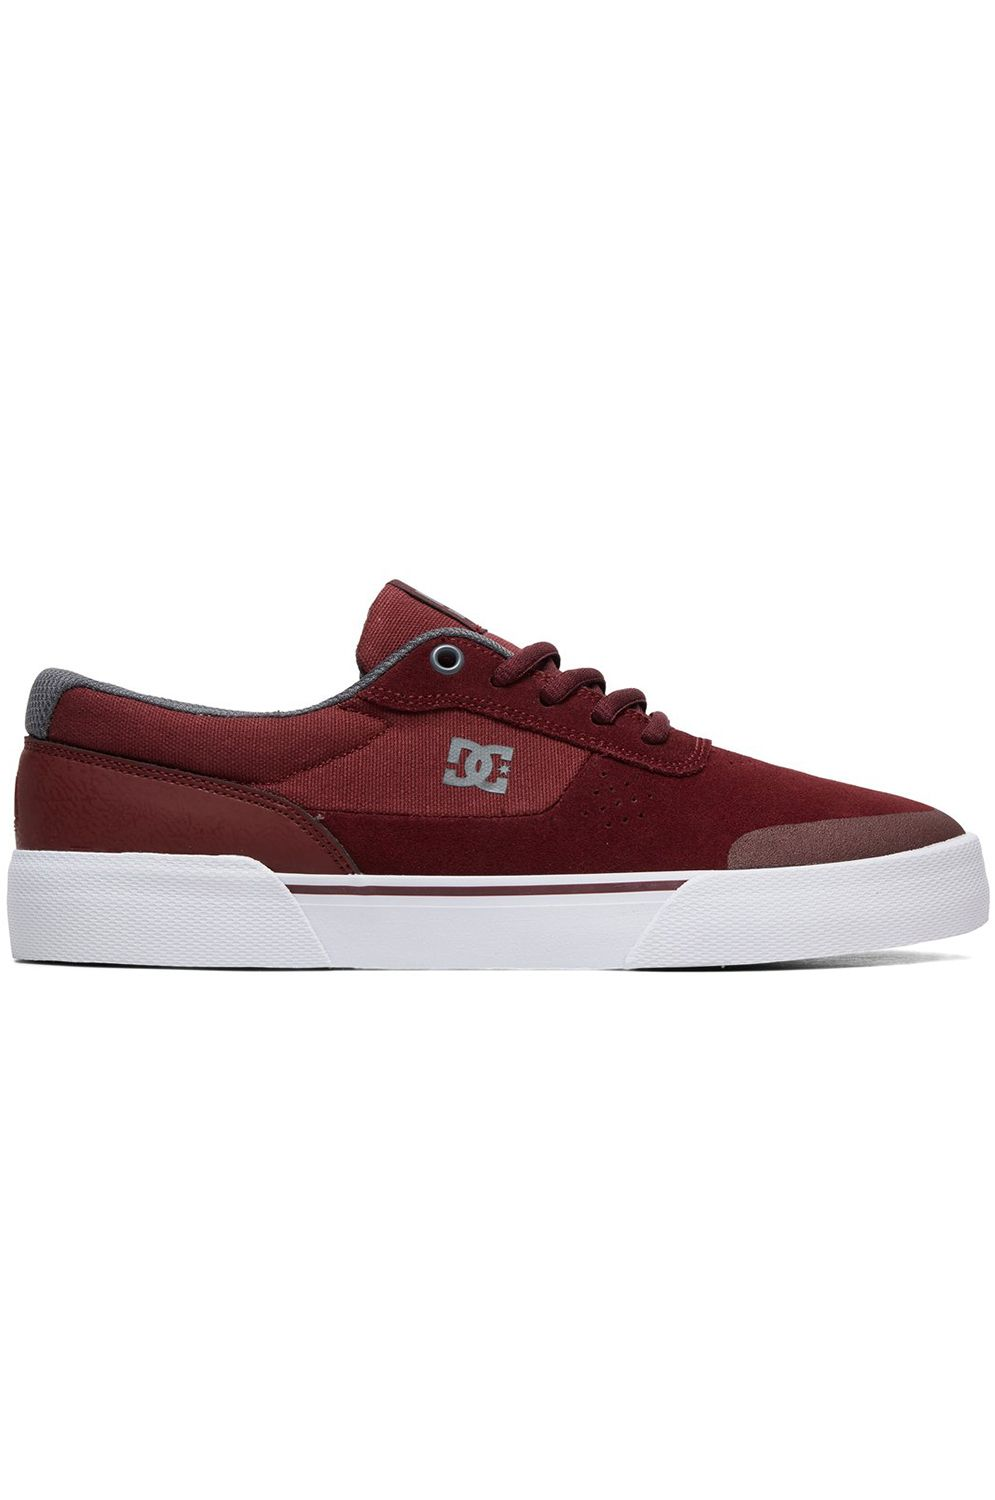 DC Shoes Shoes SWITCH PLUS S Burgundy